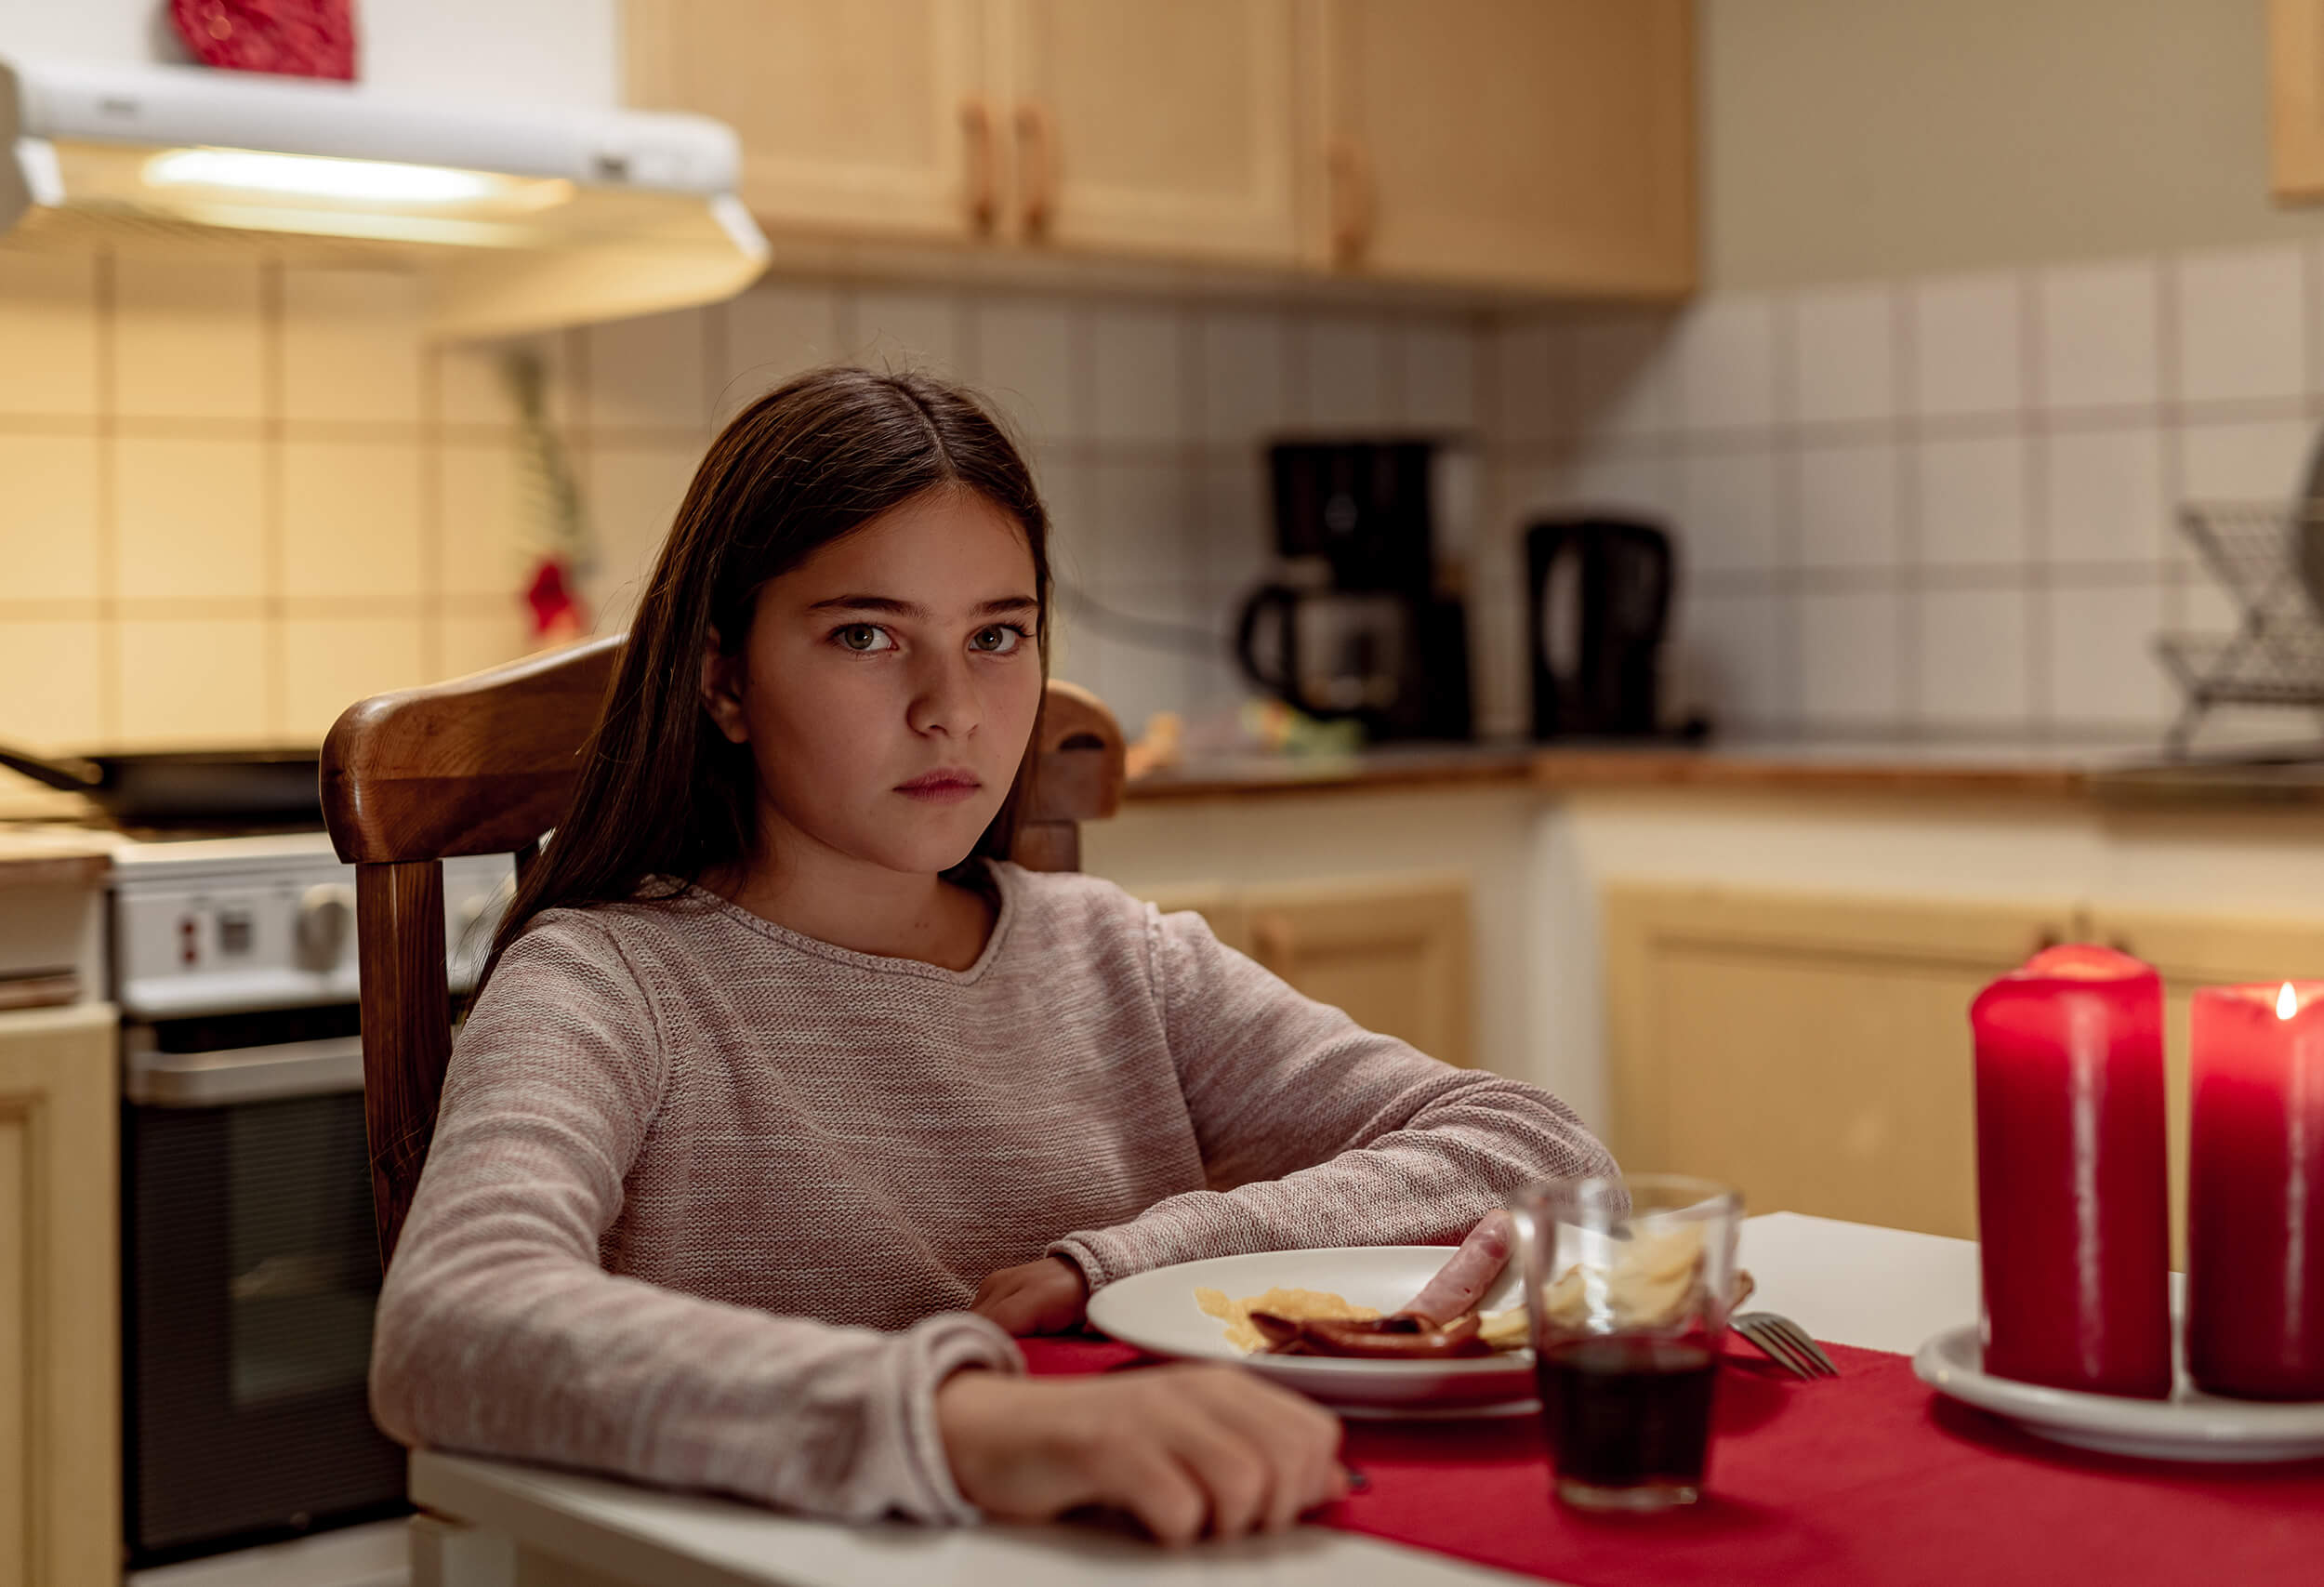 Girl sitting by table with Christmas dinner. Looks sad and bored.